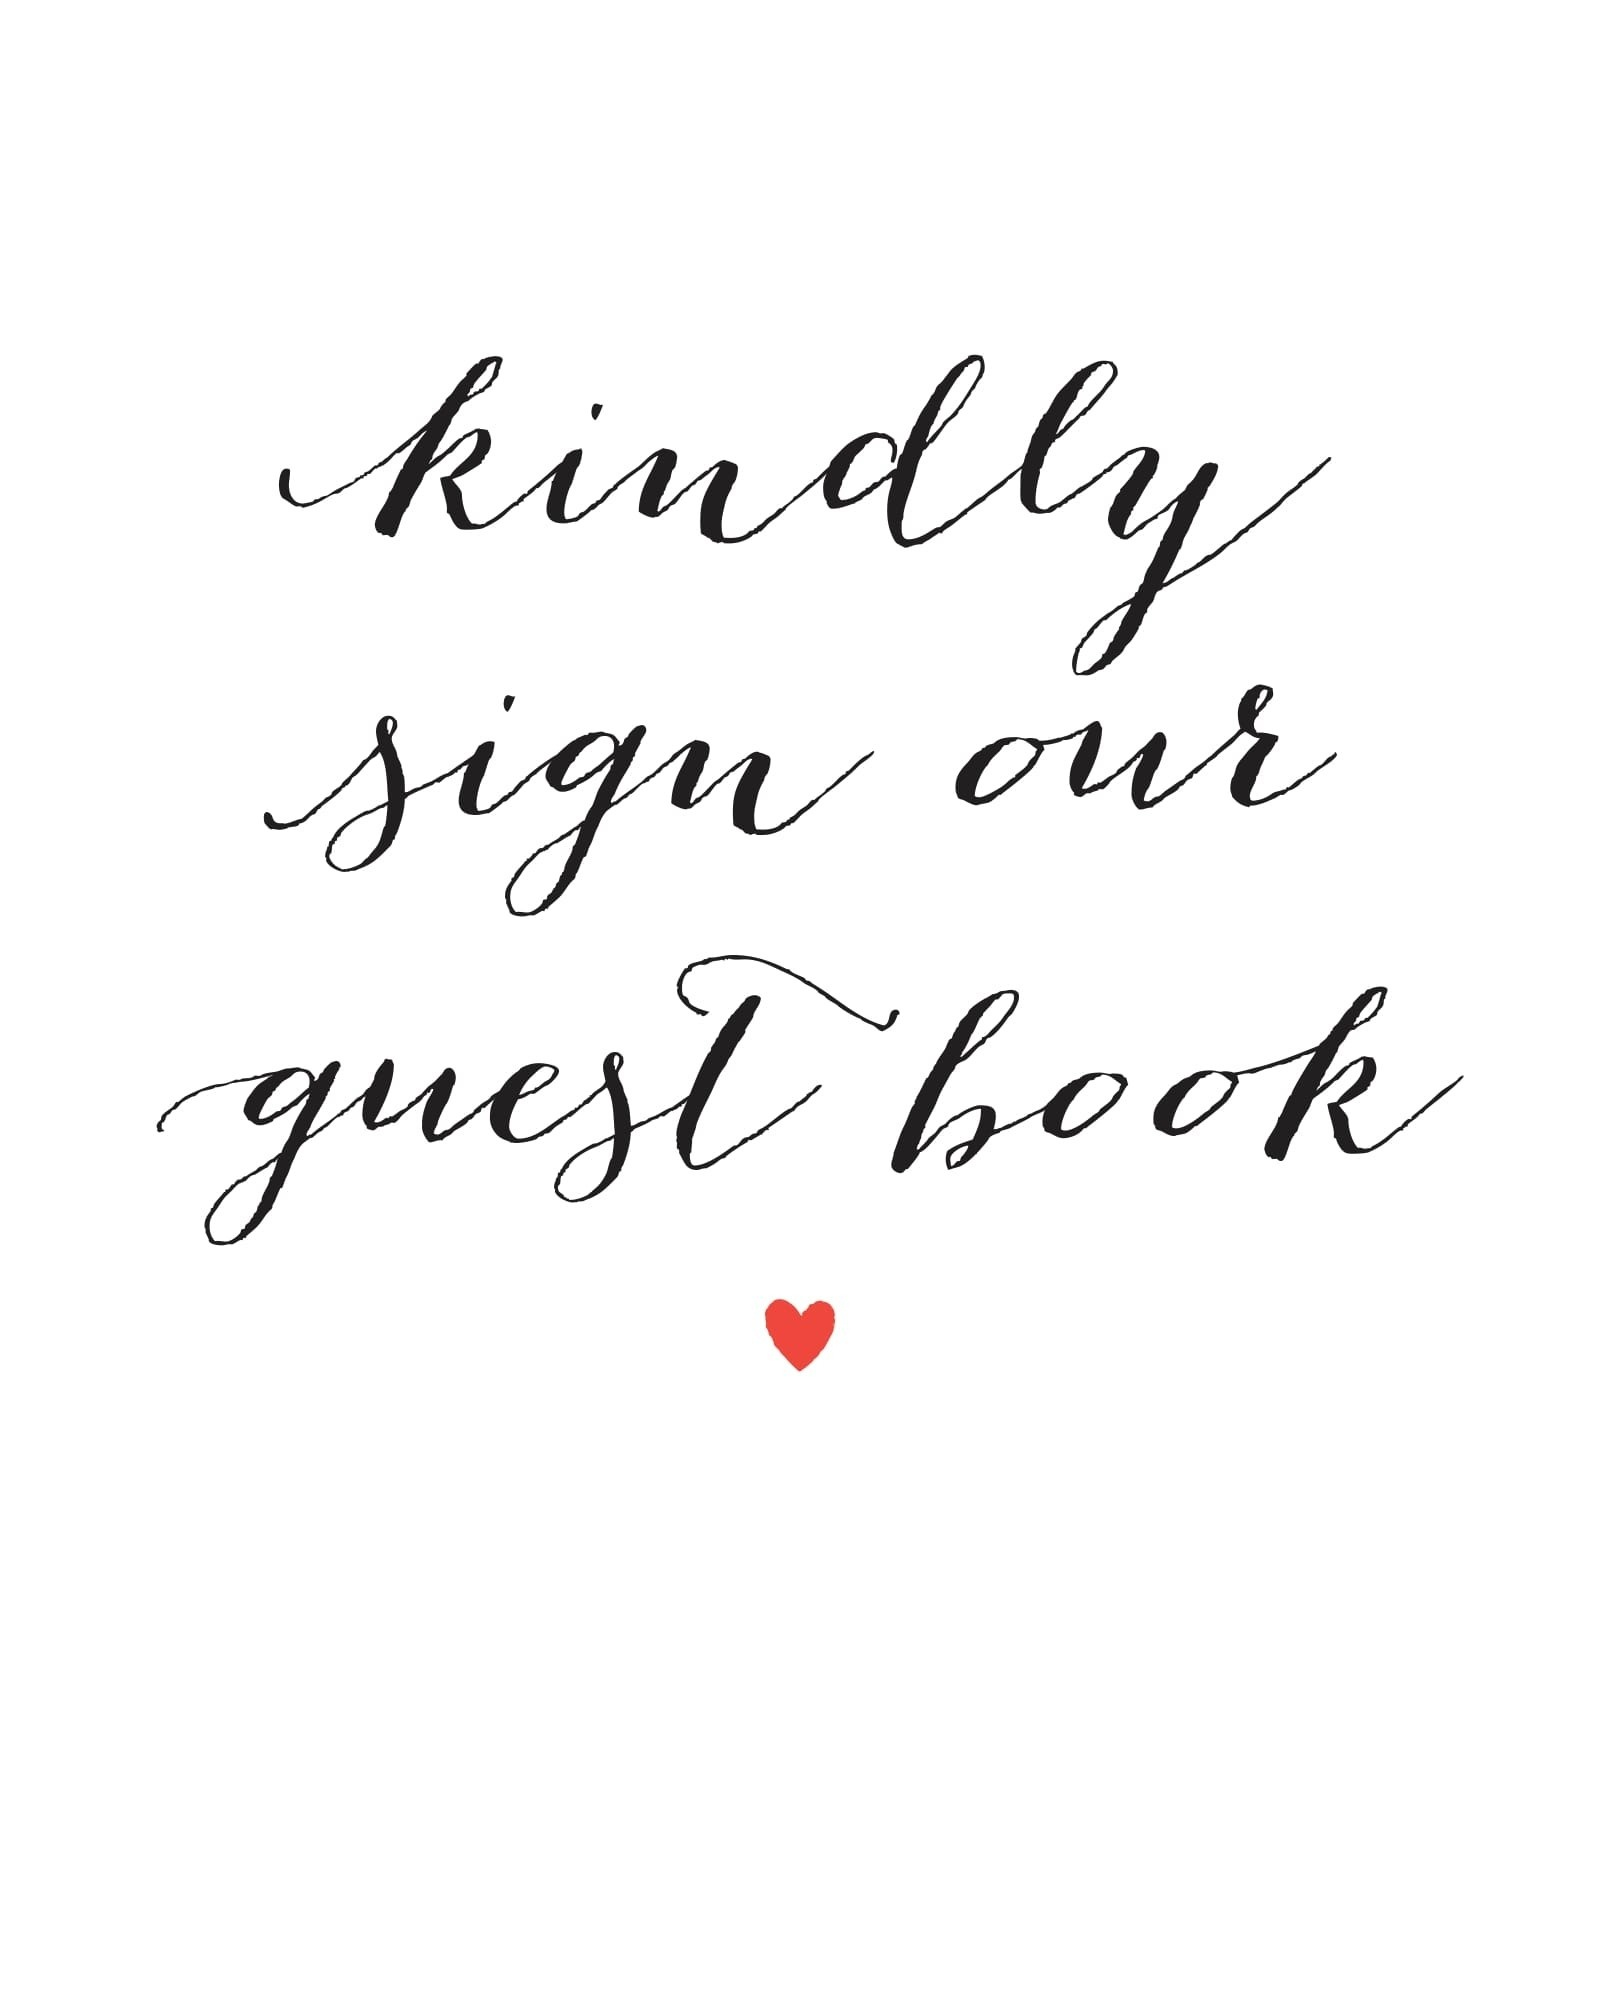 Wedding Signs Printables And Diy Templates Of Signs - Printable Sign Maker Online Free